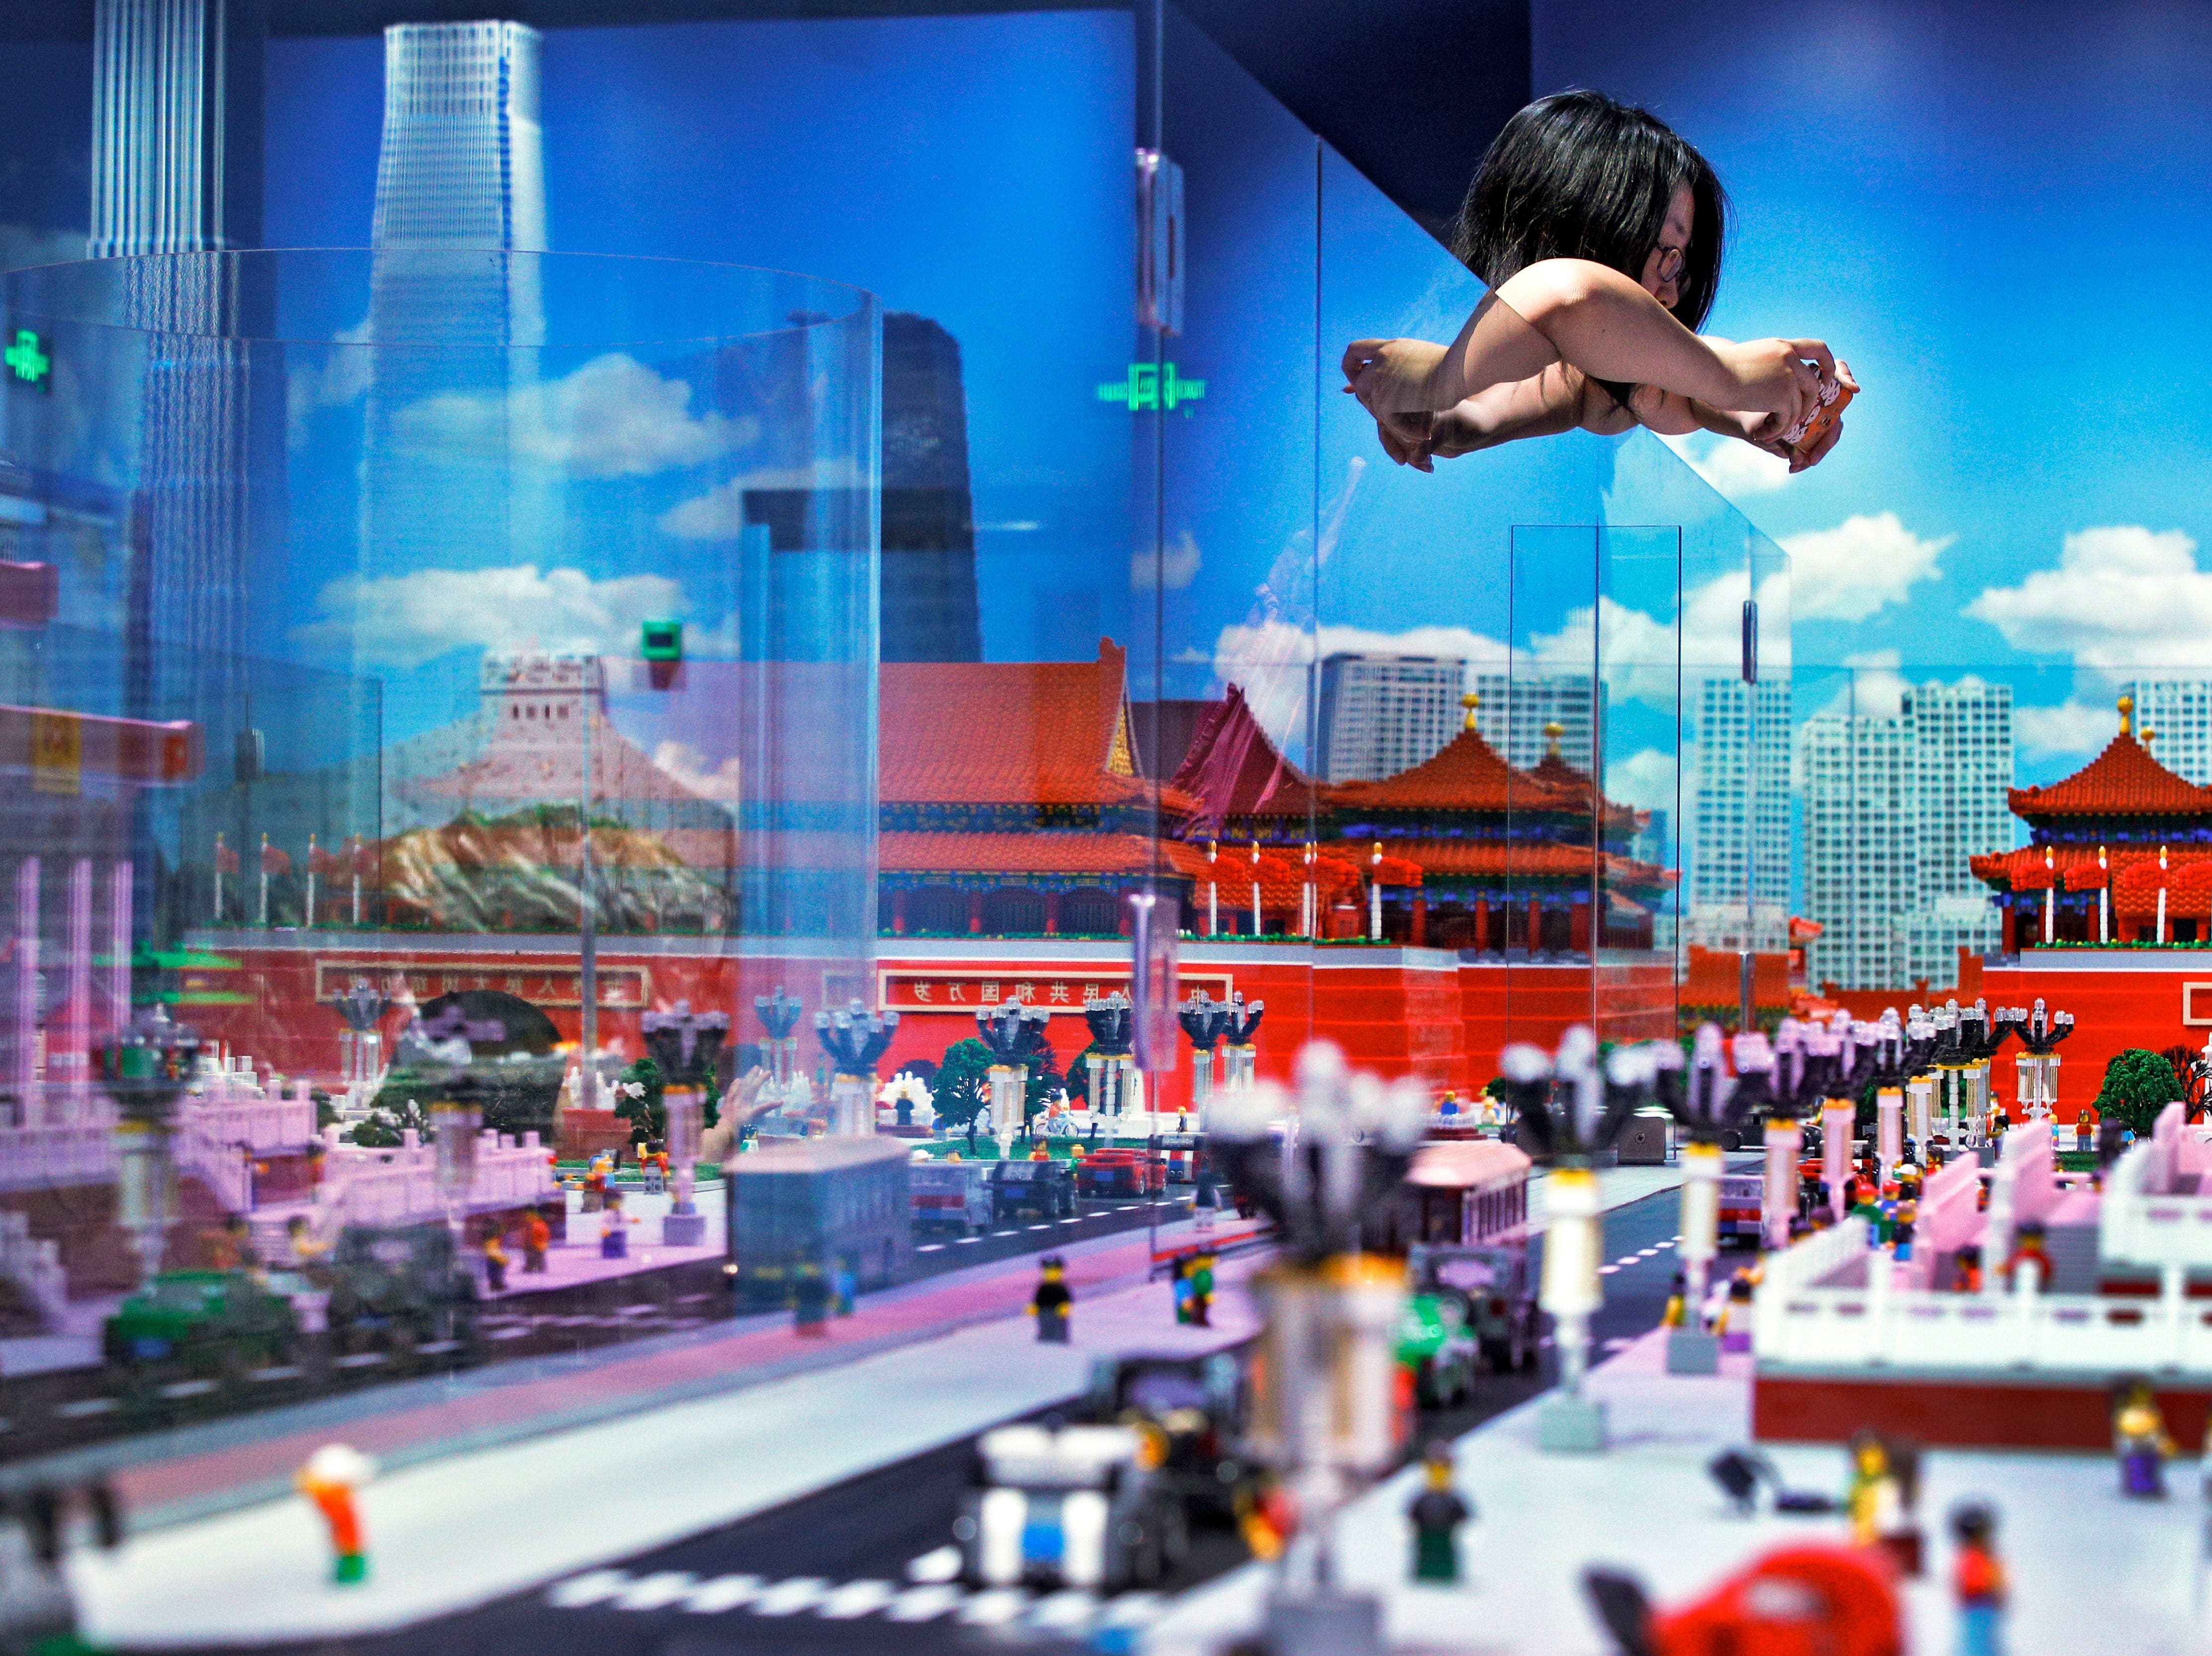 A woman takes a photo of the Forbidden City model as a glass panel reflecting the skyscrapers at the Central Business District and the Great Wall of China, all made of Lego bricks, on display at a newly opened Legoland Discovery Center in Beijing, Monday, April 22, 2019. The Legoland Discovery Center offering children and parents a sneak peek of miniatures showcases the major landmarks from historical sites to iconic skyscrapers in the capital city.